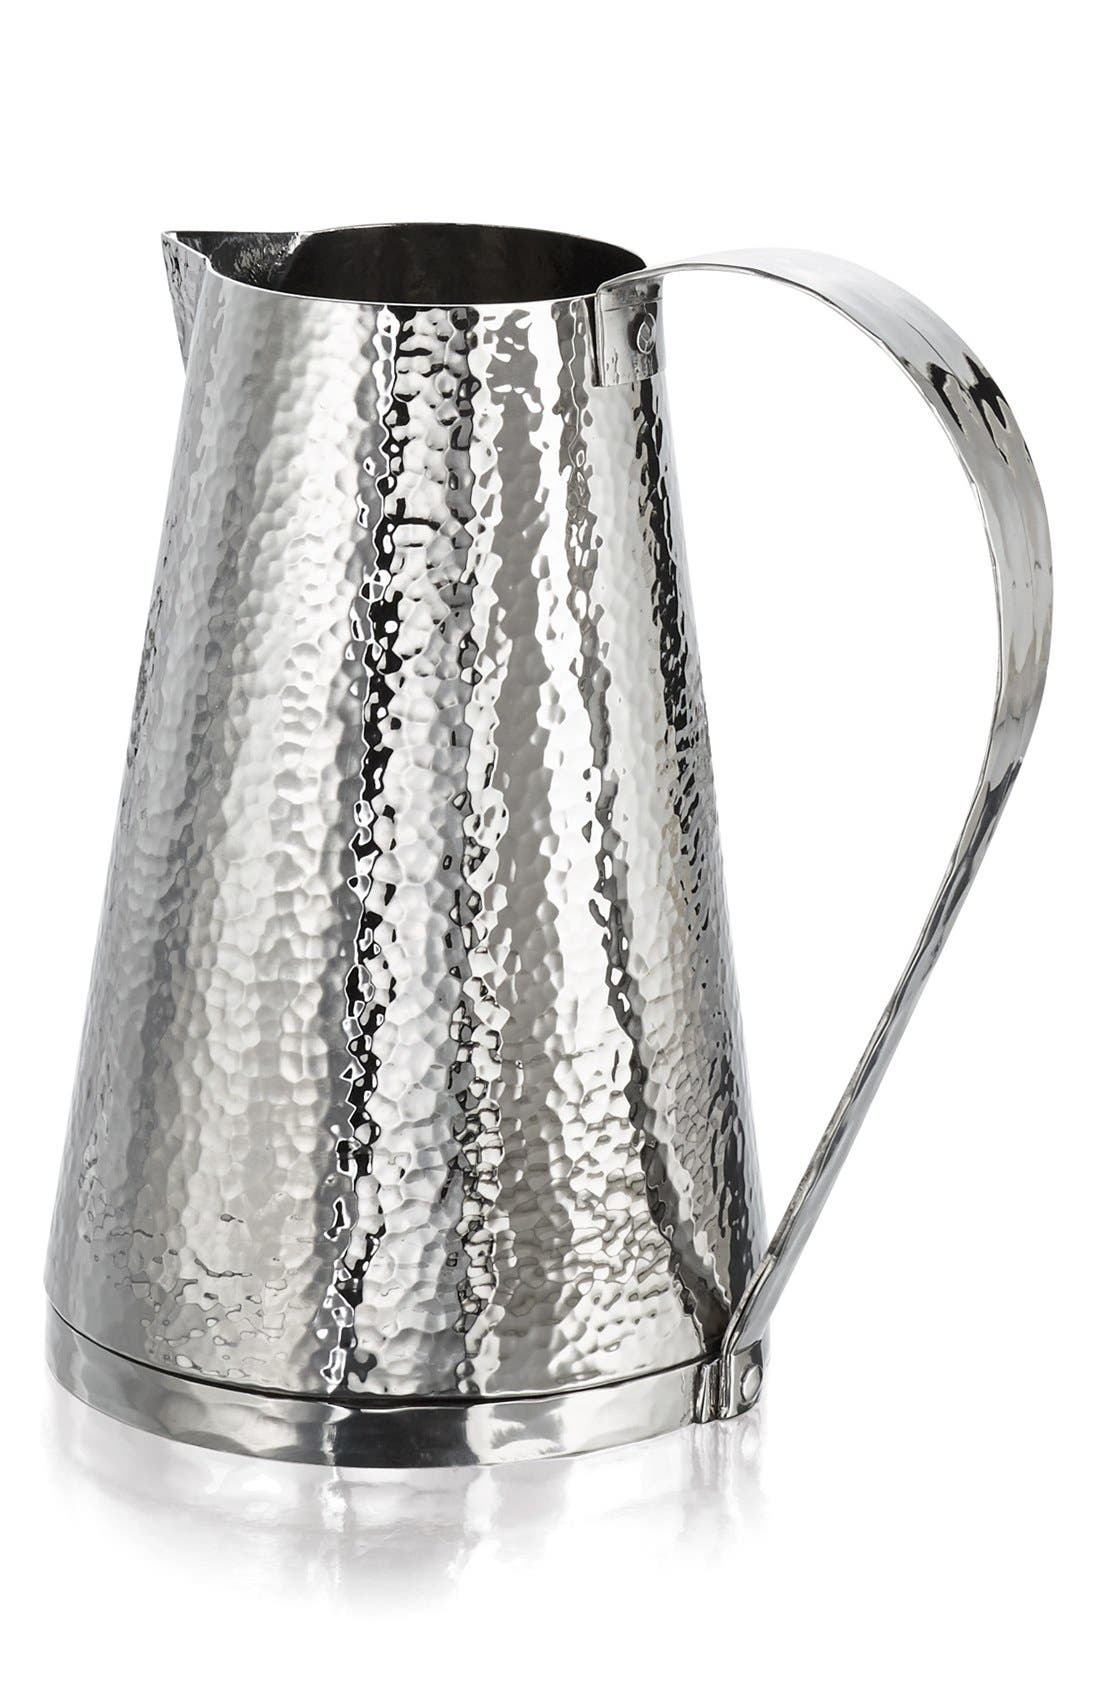 Main Image - Michael Aram 'Rivet' Hammered Stainless Steel Pitcher